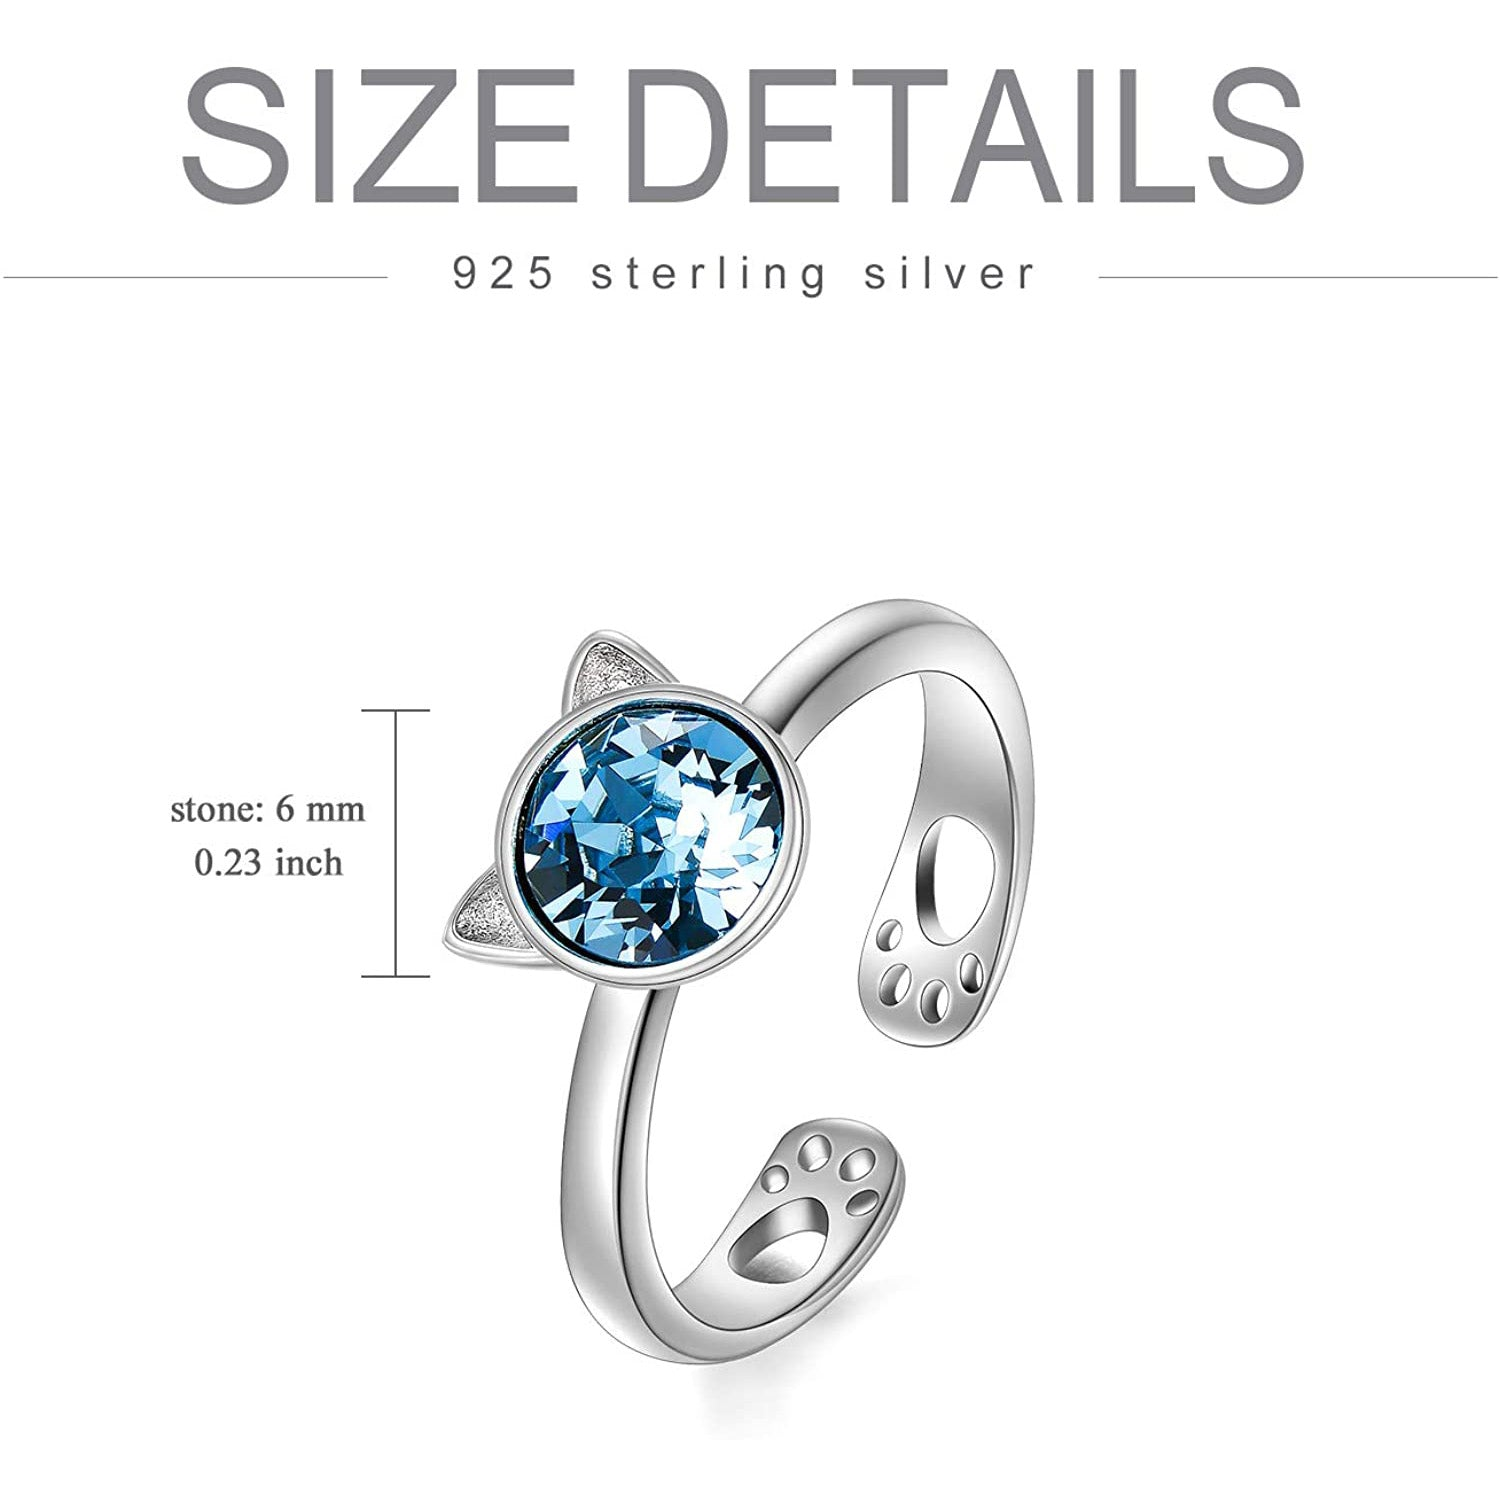 925 Sterling Silver Cat Ring With Swarovski Crystal